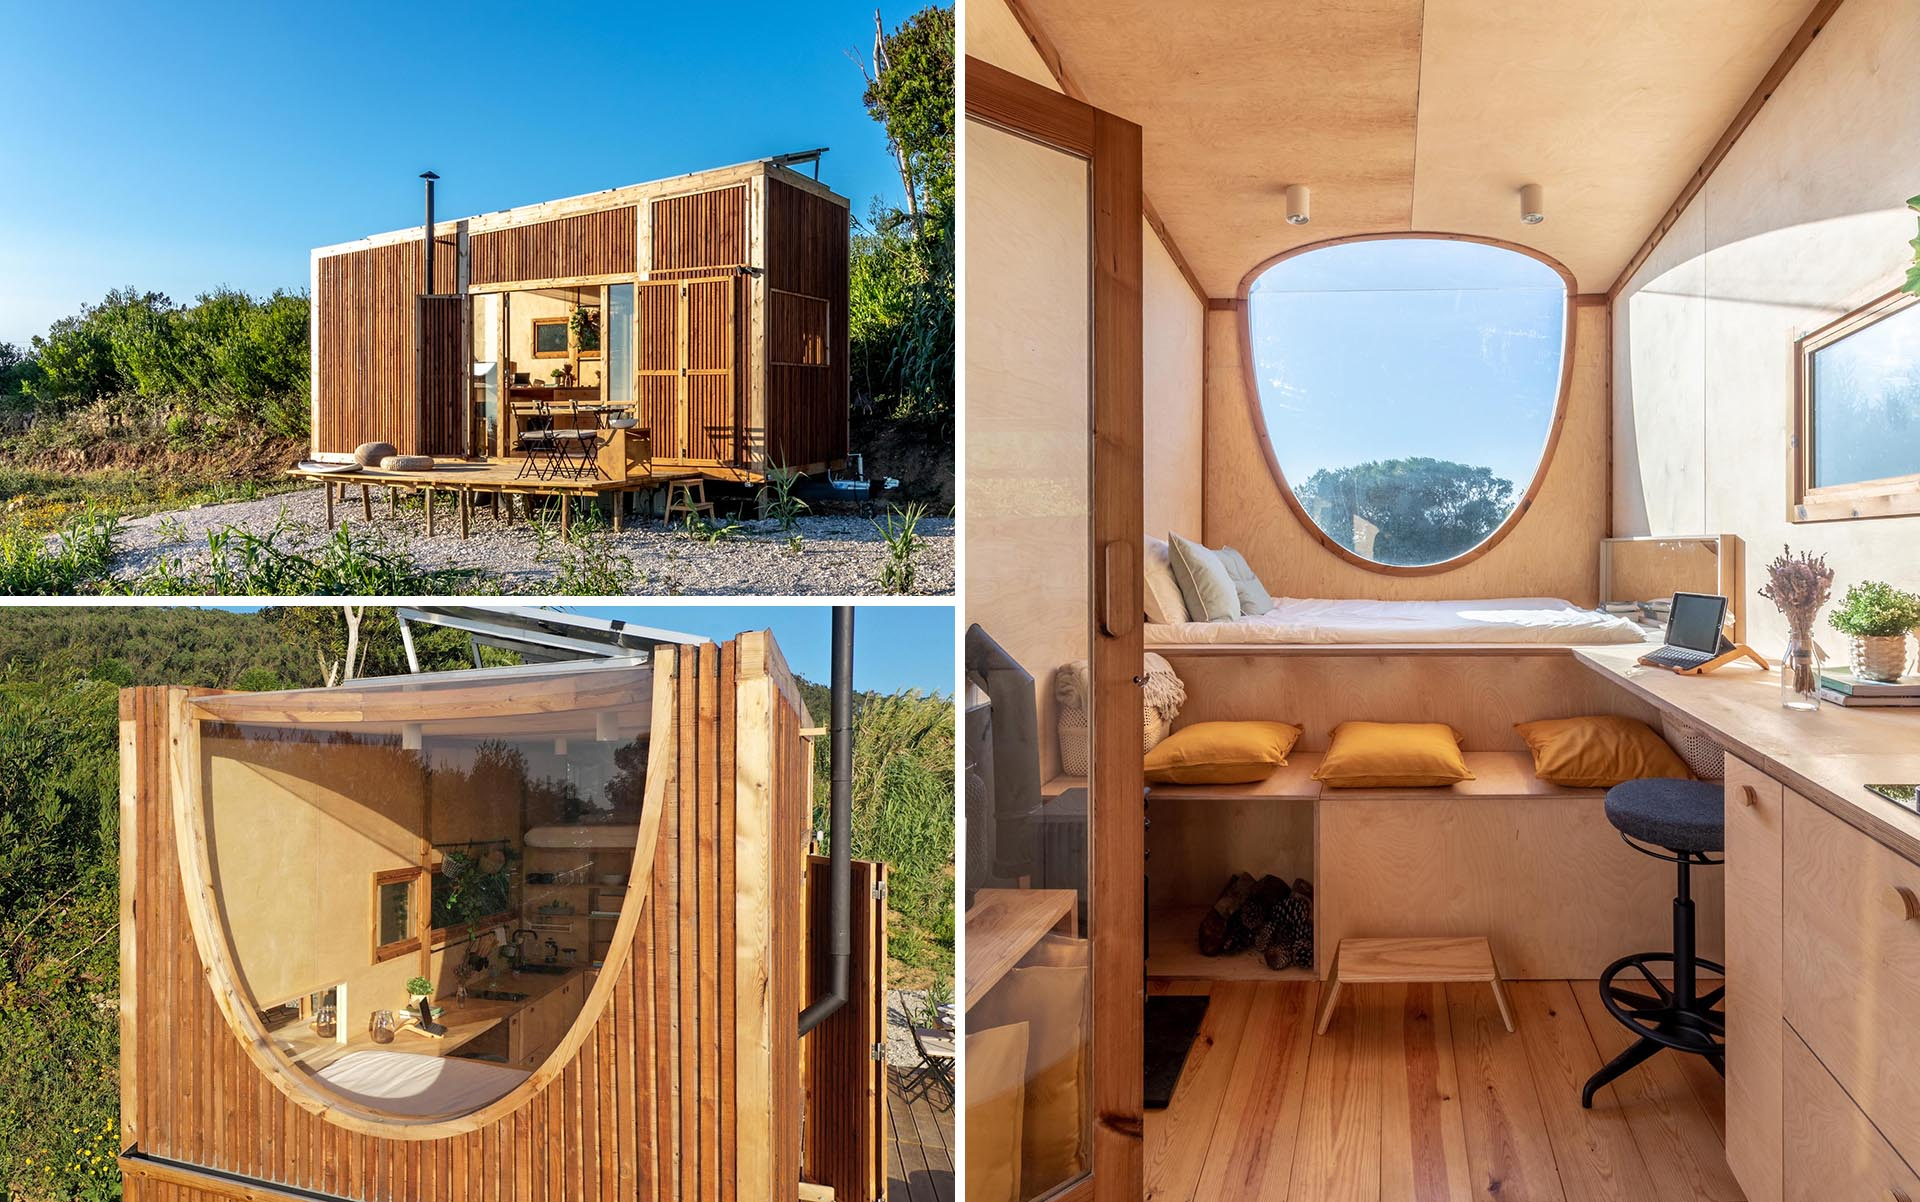 A modern tiny house covered in heat-treated timber, has a birch plywood interior, kitchen, bathroom, and two sleeping areas.